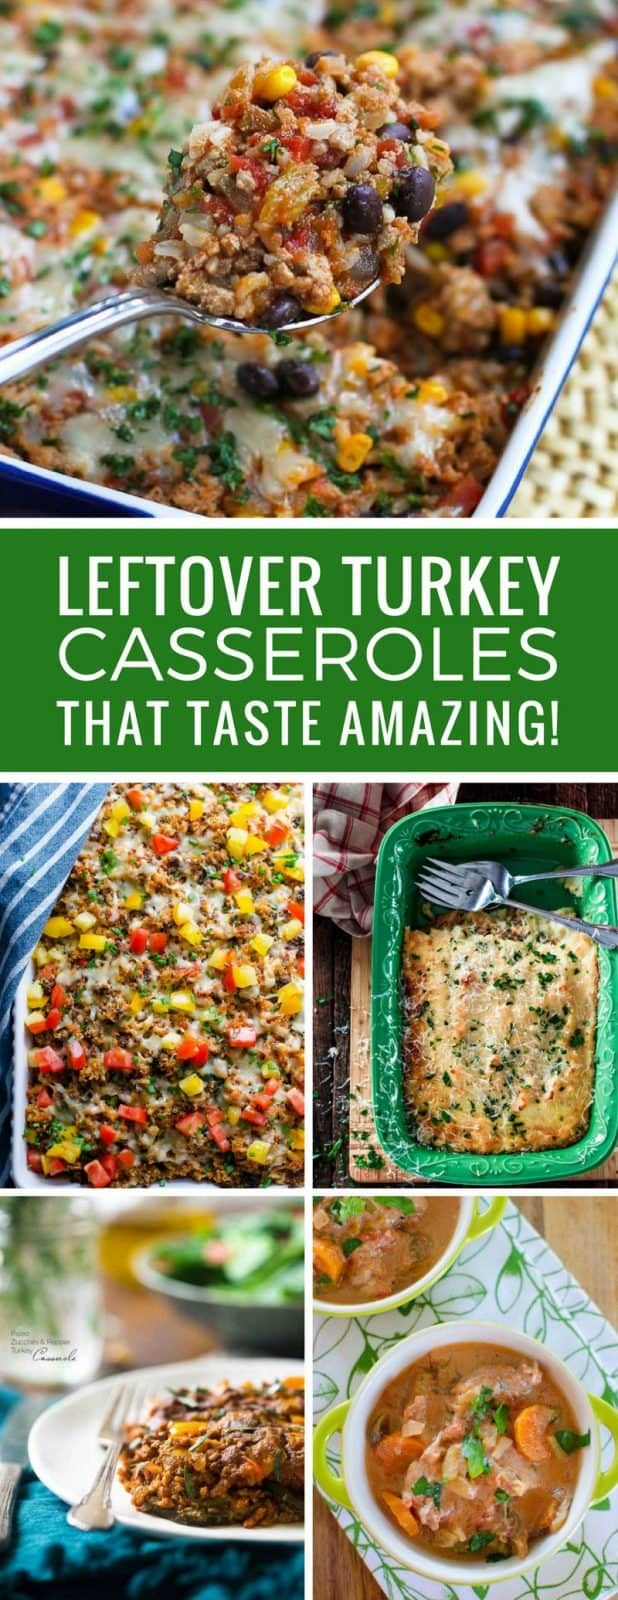 9 Easy Leftover Turkey Casserole Recipes That'll Make You Look Forward to Dinner! #leftoverturkeyrecipeseasy